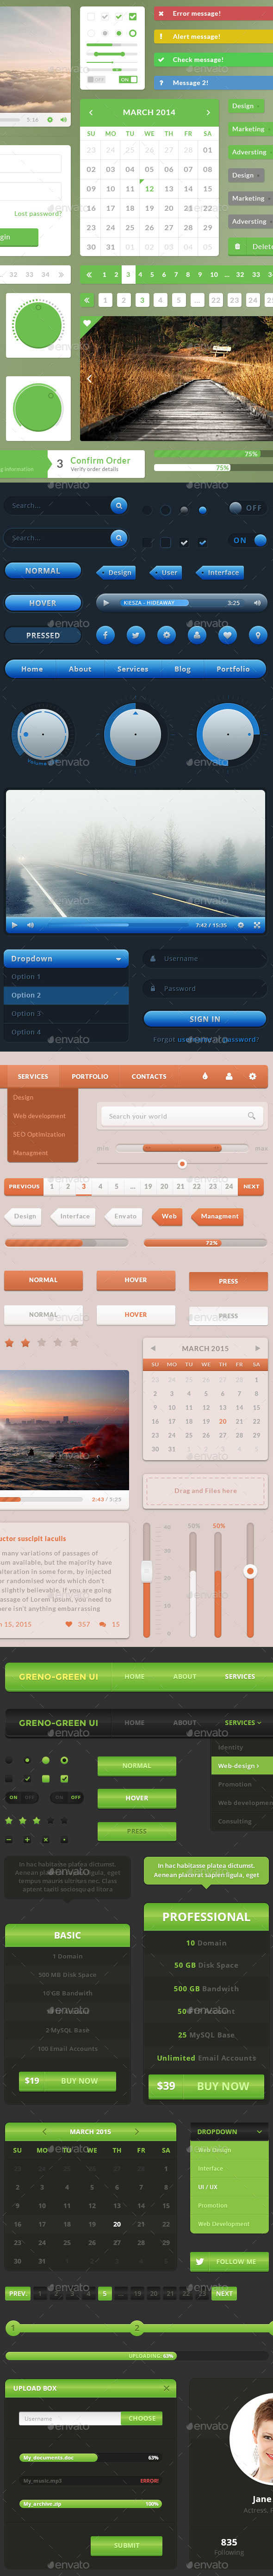 UI Web Elements Pack 2 - User Interfaces Web Elements